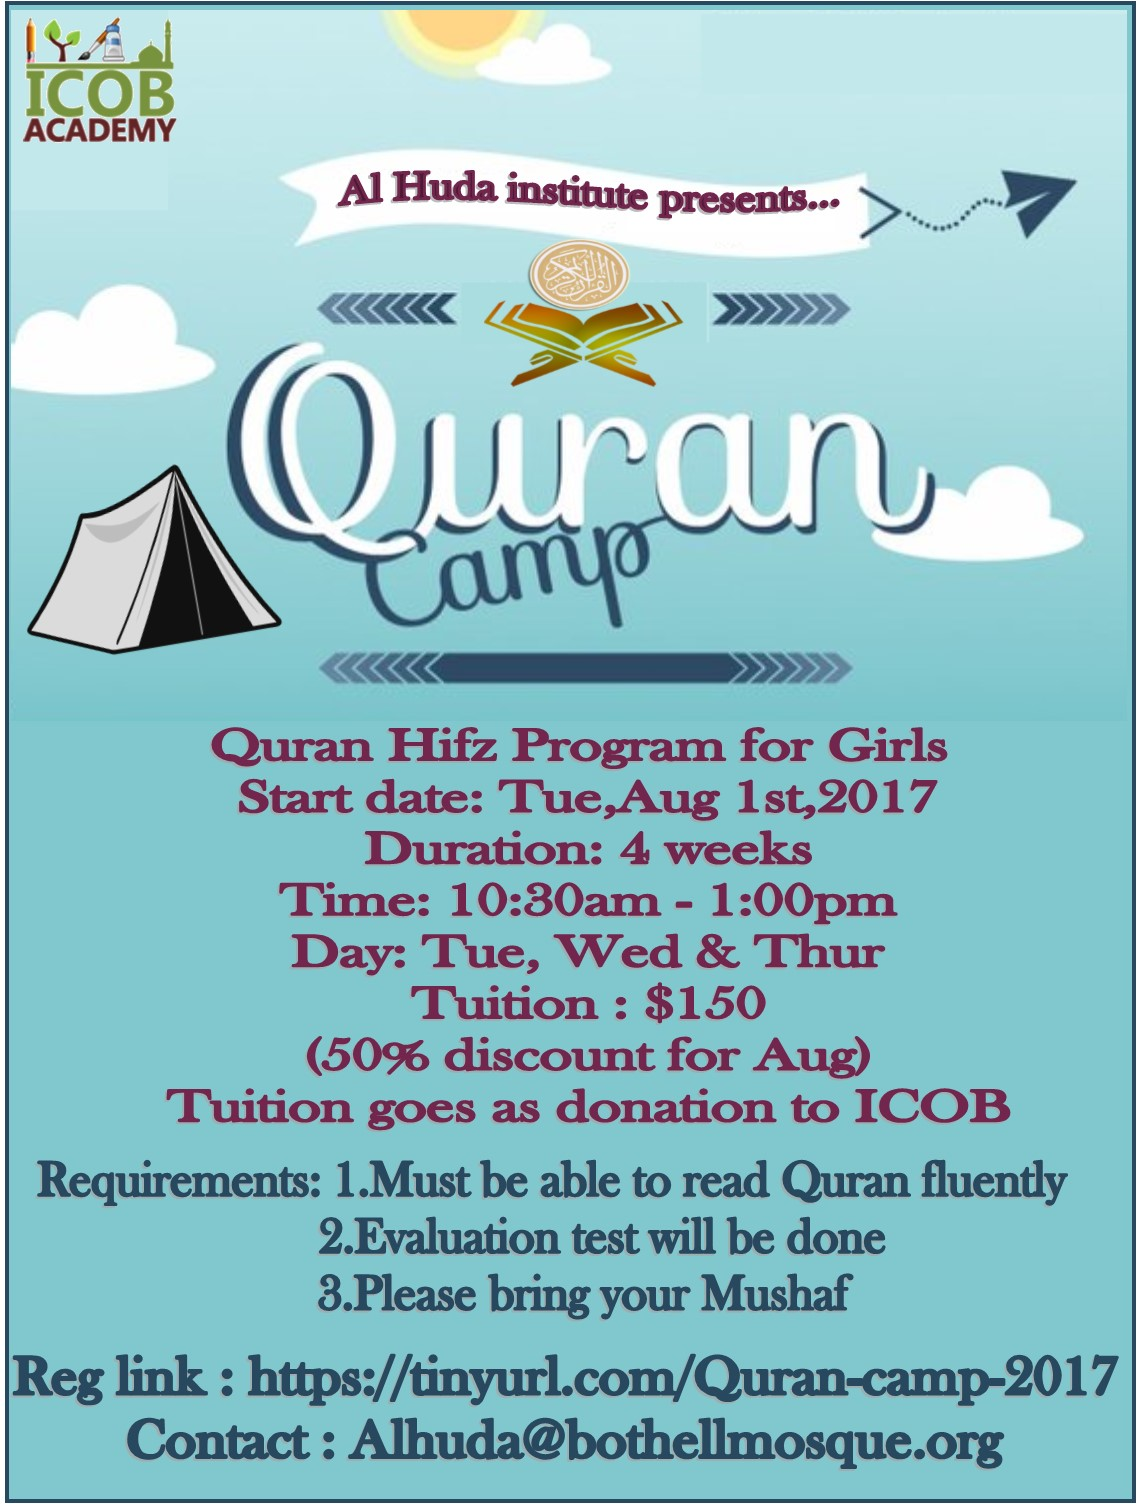 Quran camp for girls 2017